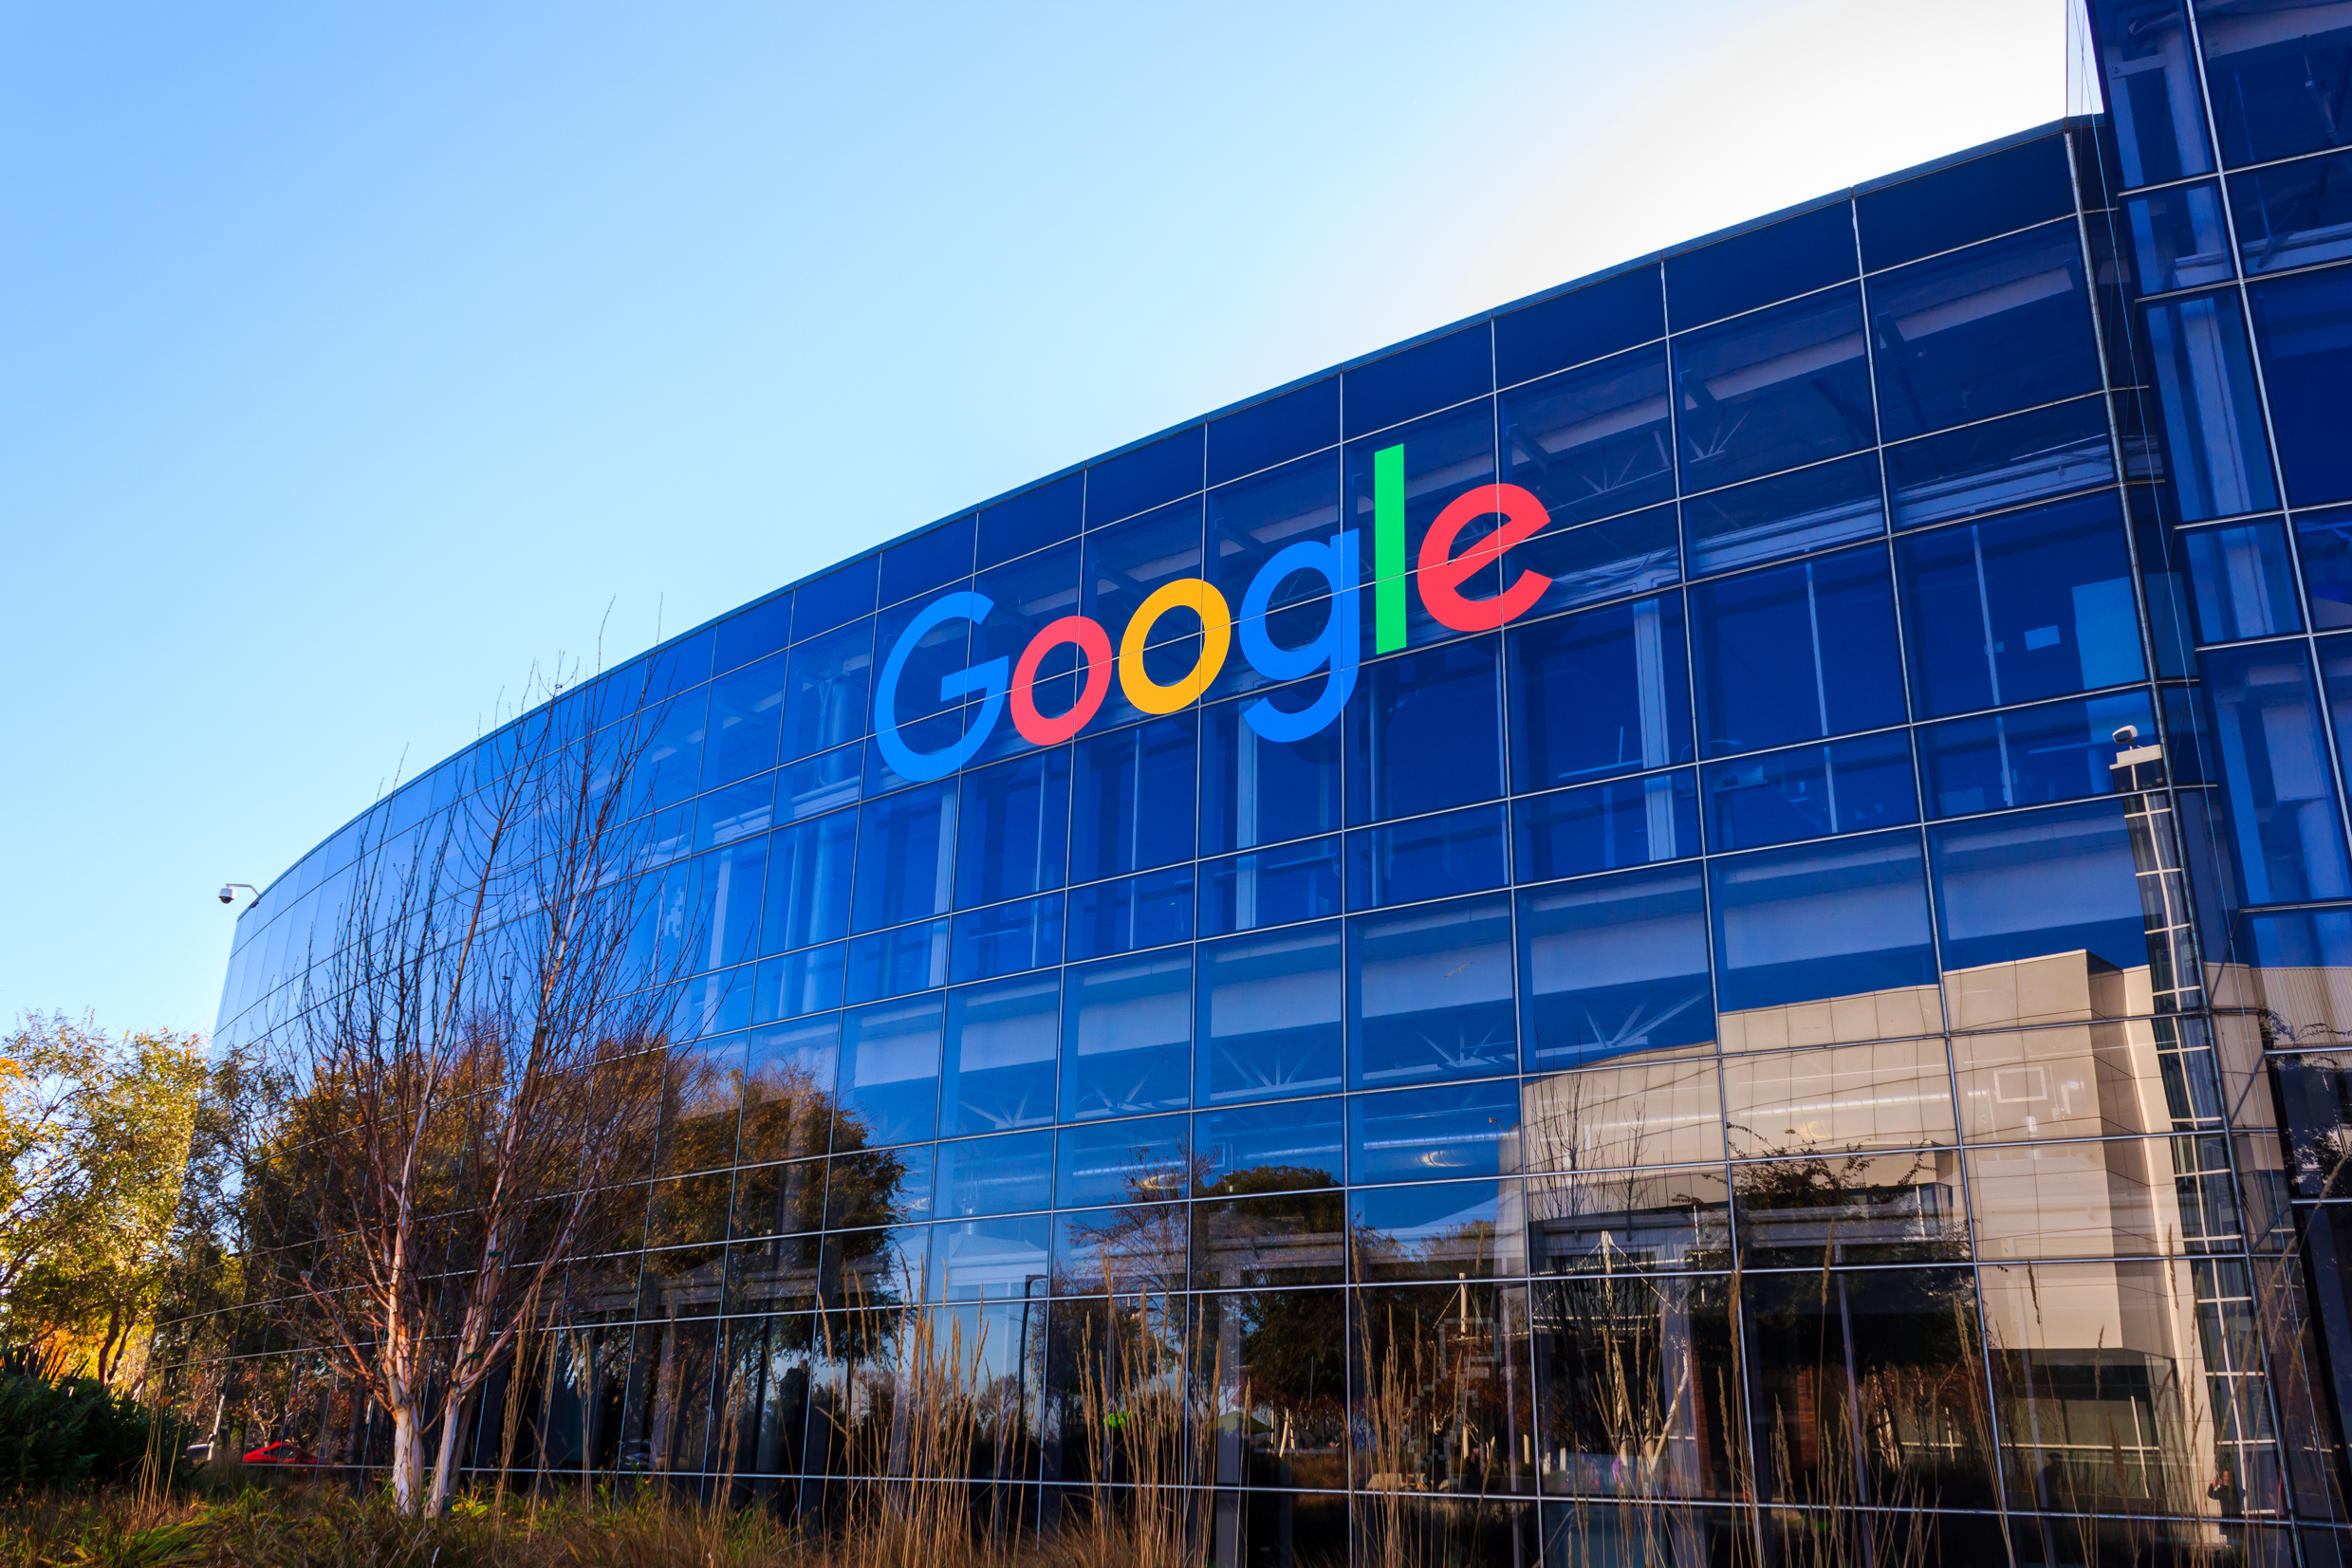 Google said its Threat Analysis Group (TAG) tracks more than 270 targeted or government-backed groups from over 50 countries. It did not name any entity.